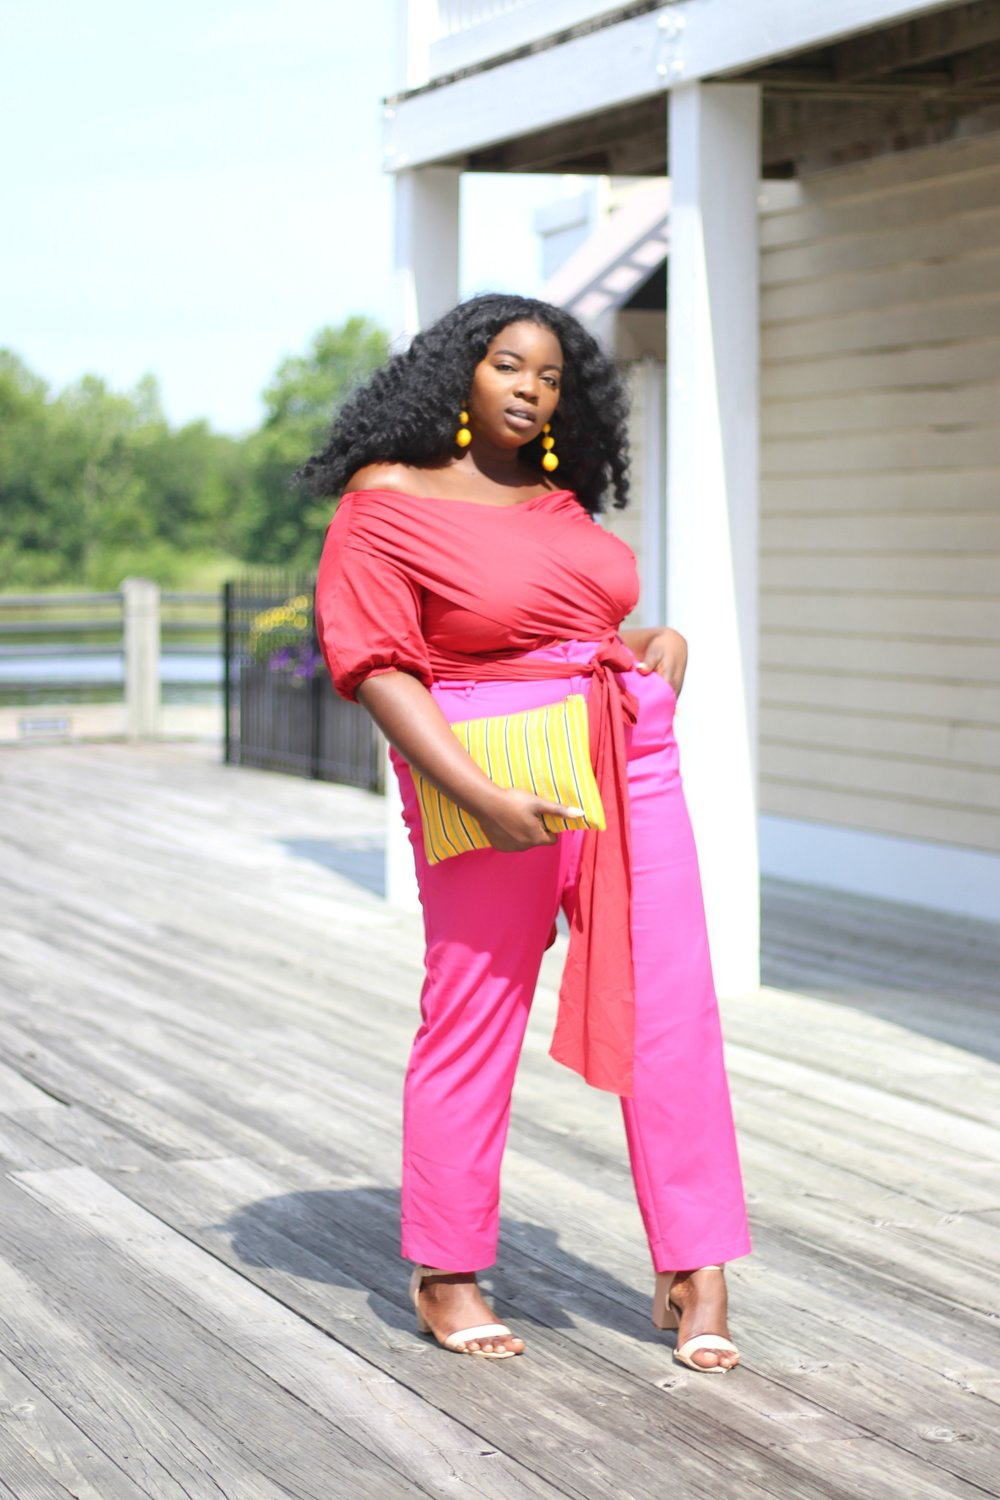 1. BE BOLD - Don't be afraid to rock bright colors. The brighter the better. When matching colors, pick from the opposite sides of the spectrum. The Color-Block trend works even better when each color is a distinct shade. I recommend 2 - 5 colors max. I paired this stunning ELOQUII plus-size RED blouse with HOT PINK pants, and YELLOW accessories.